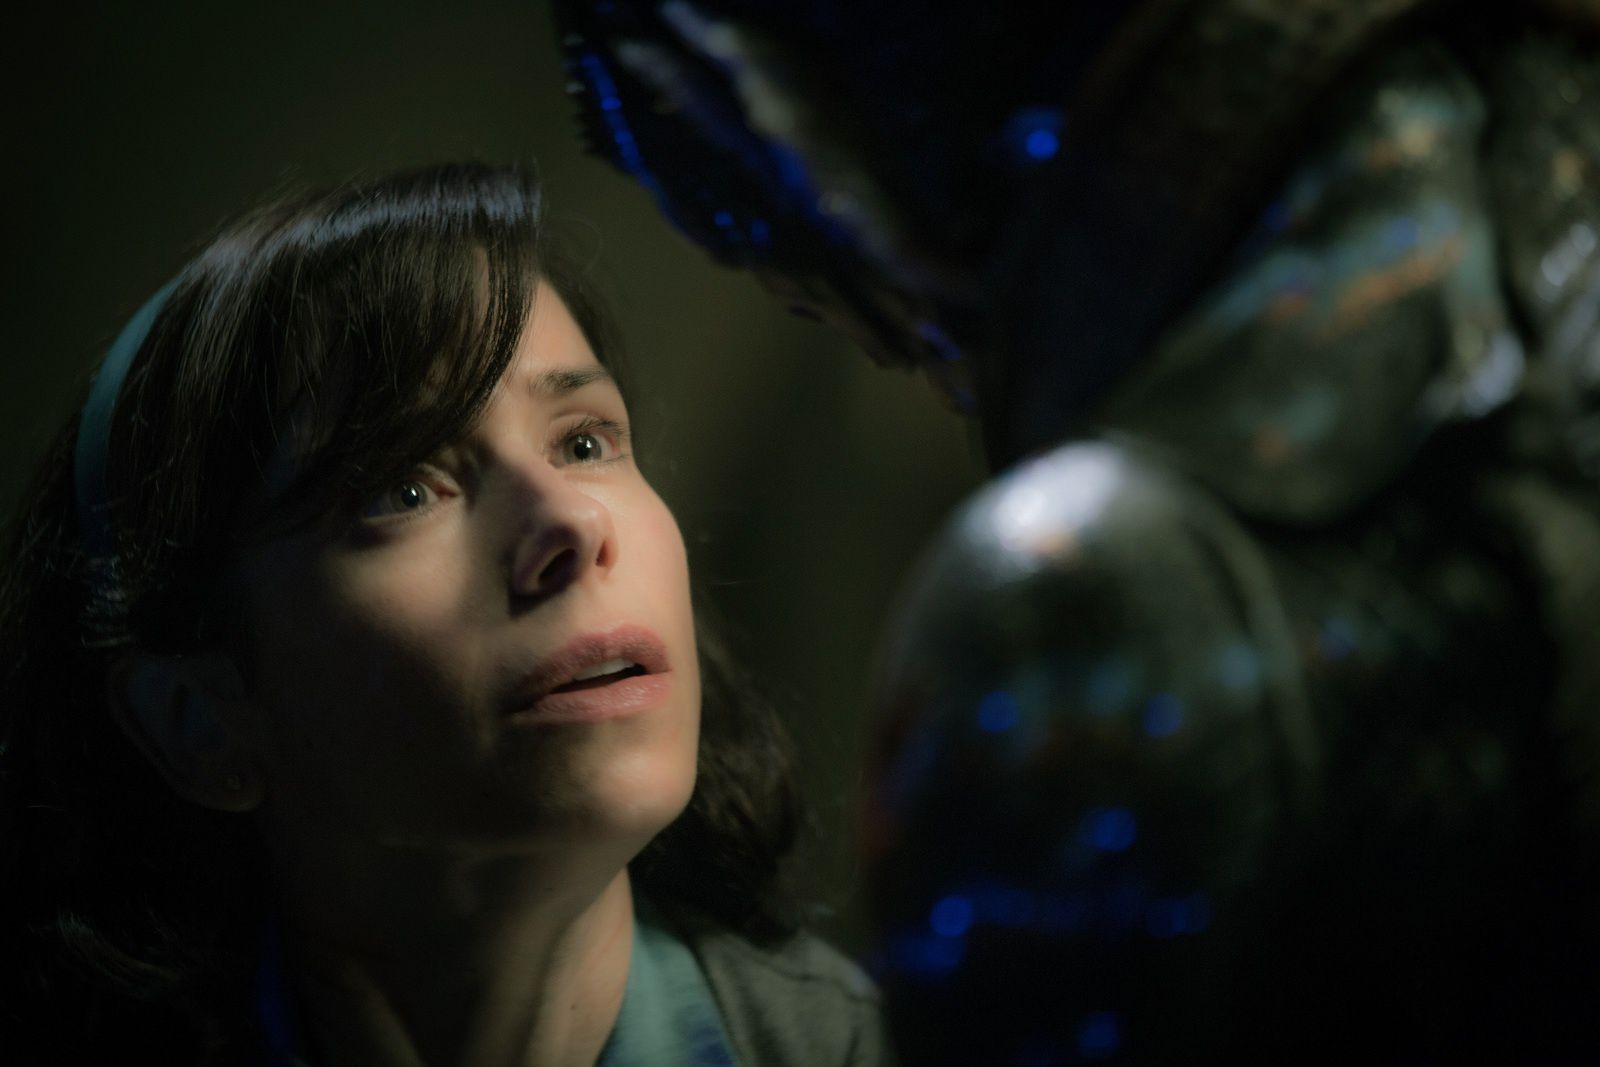 La forme de l'eau - the shape of water - photo - Guillermo del Toro